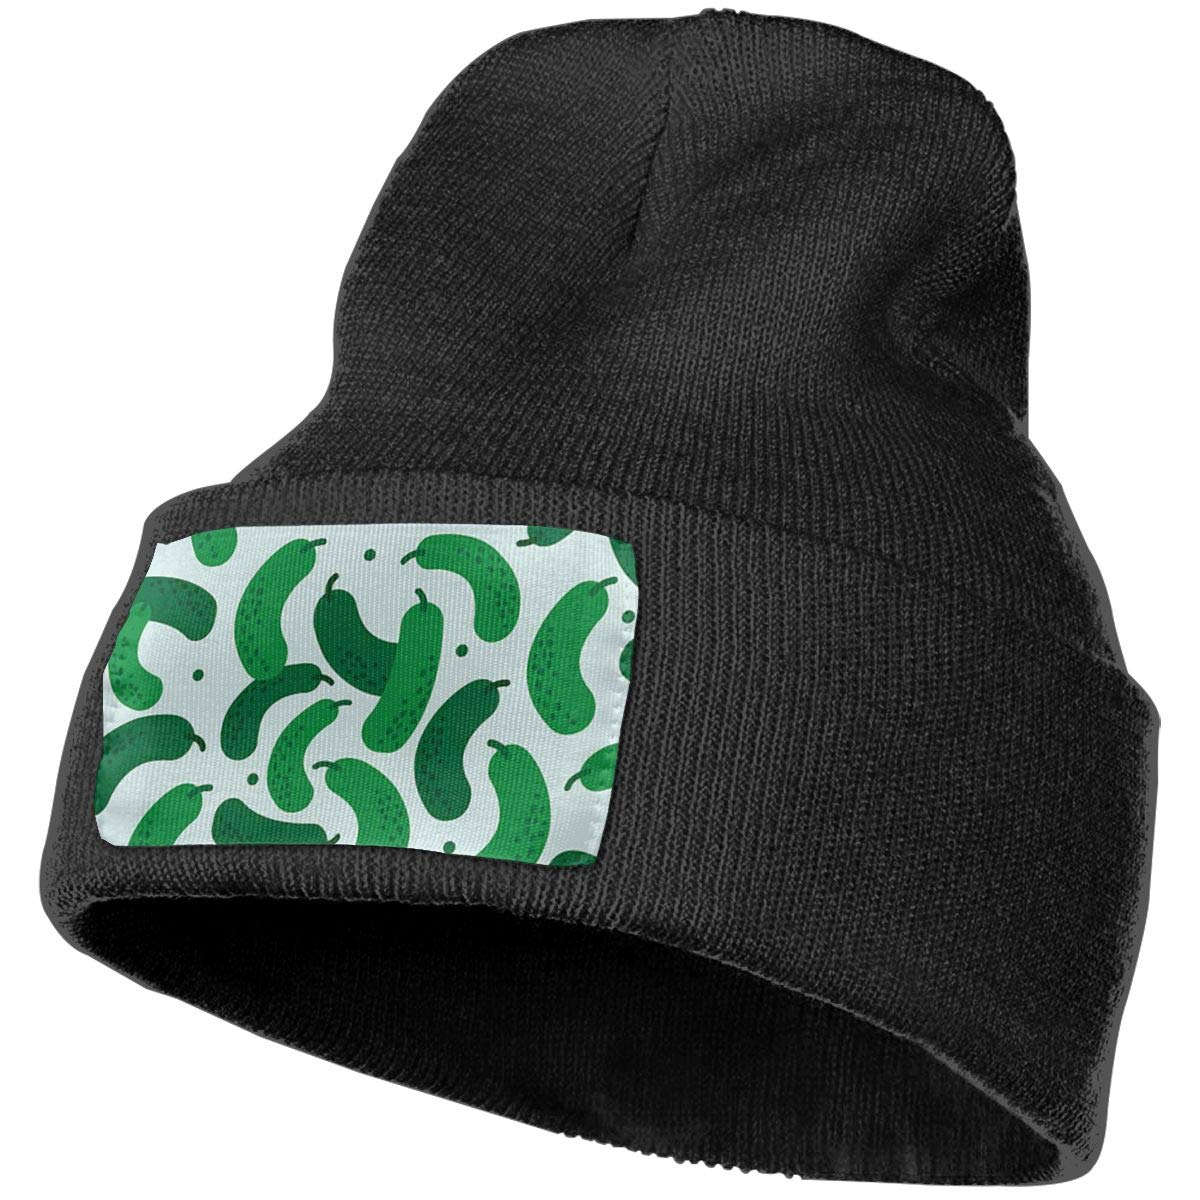 COJOP Pickles Winter Beanie Unisex Cuffed Plain Skull Knit Hat Cap